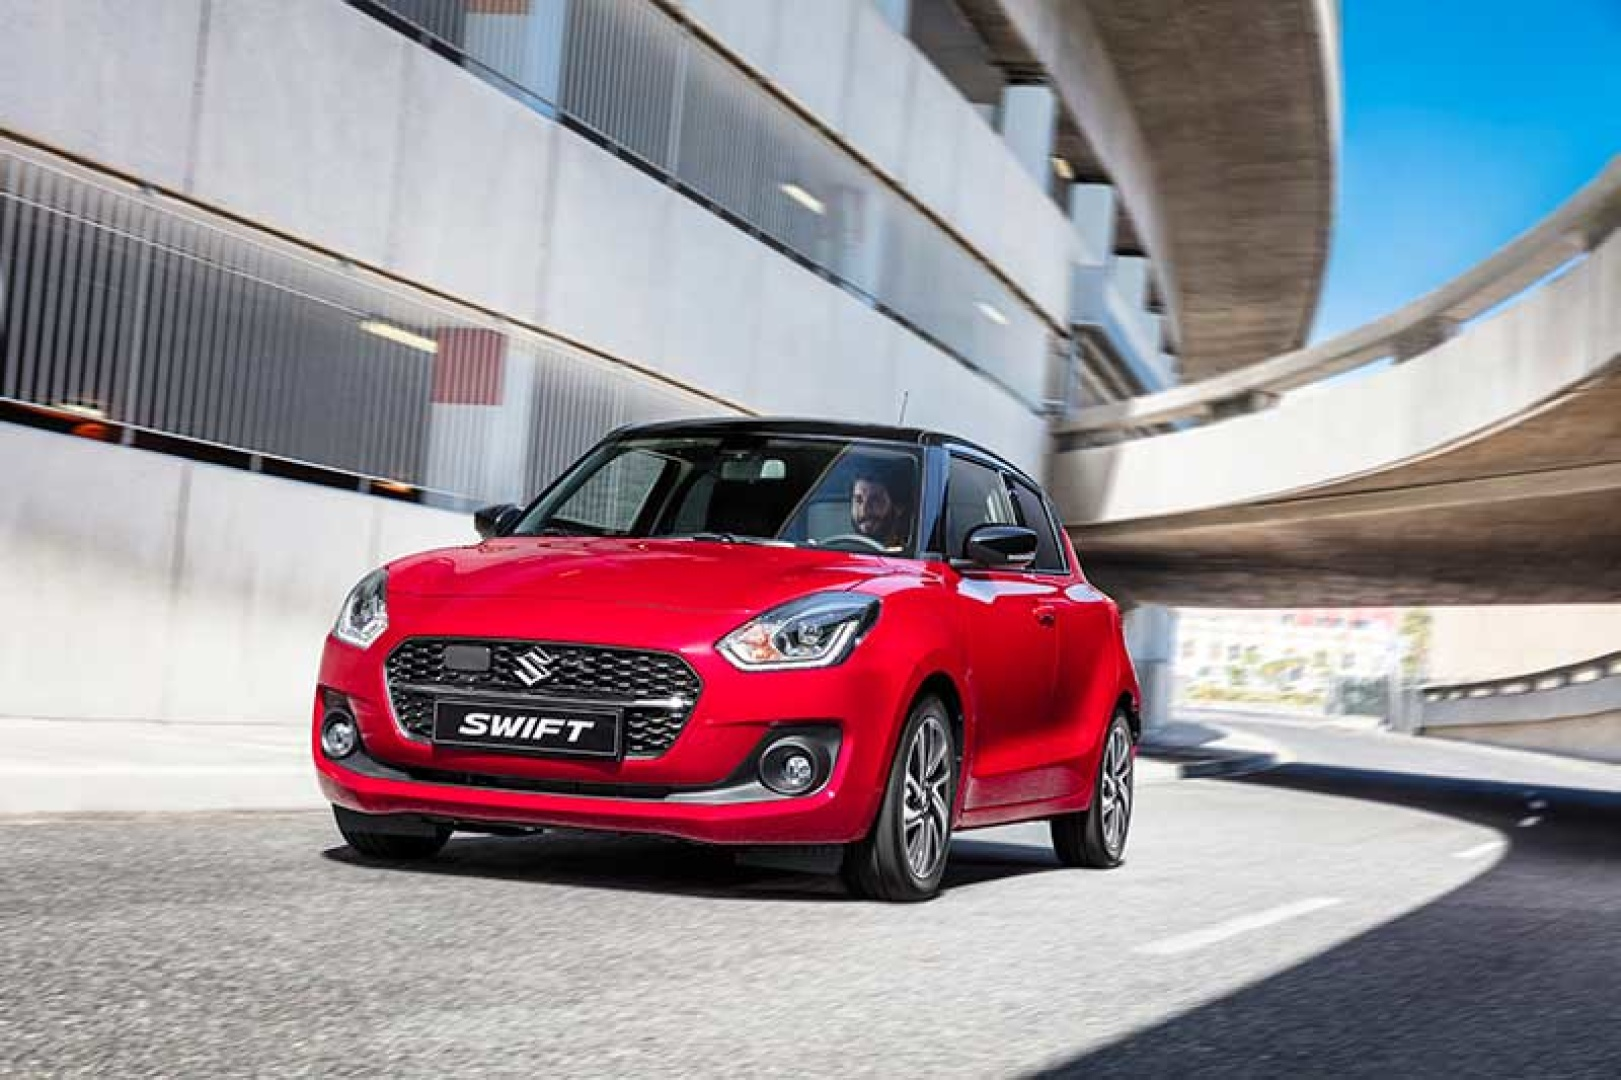 Suzuki-Swift-19